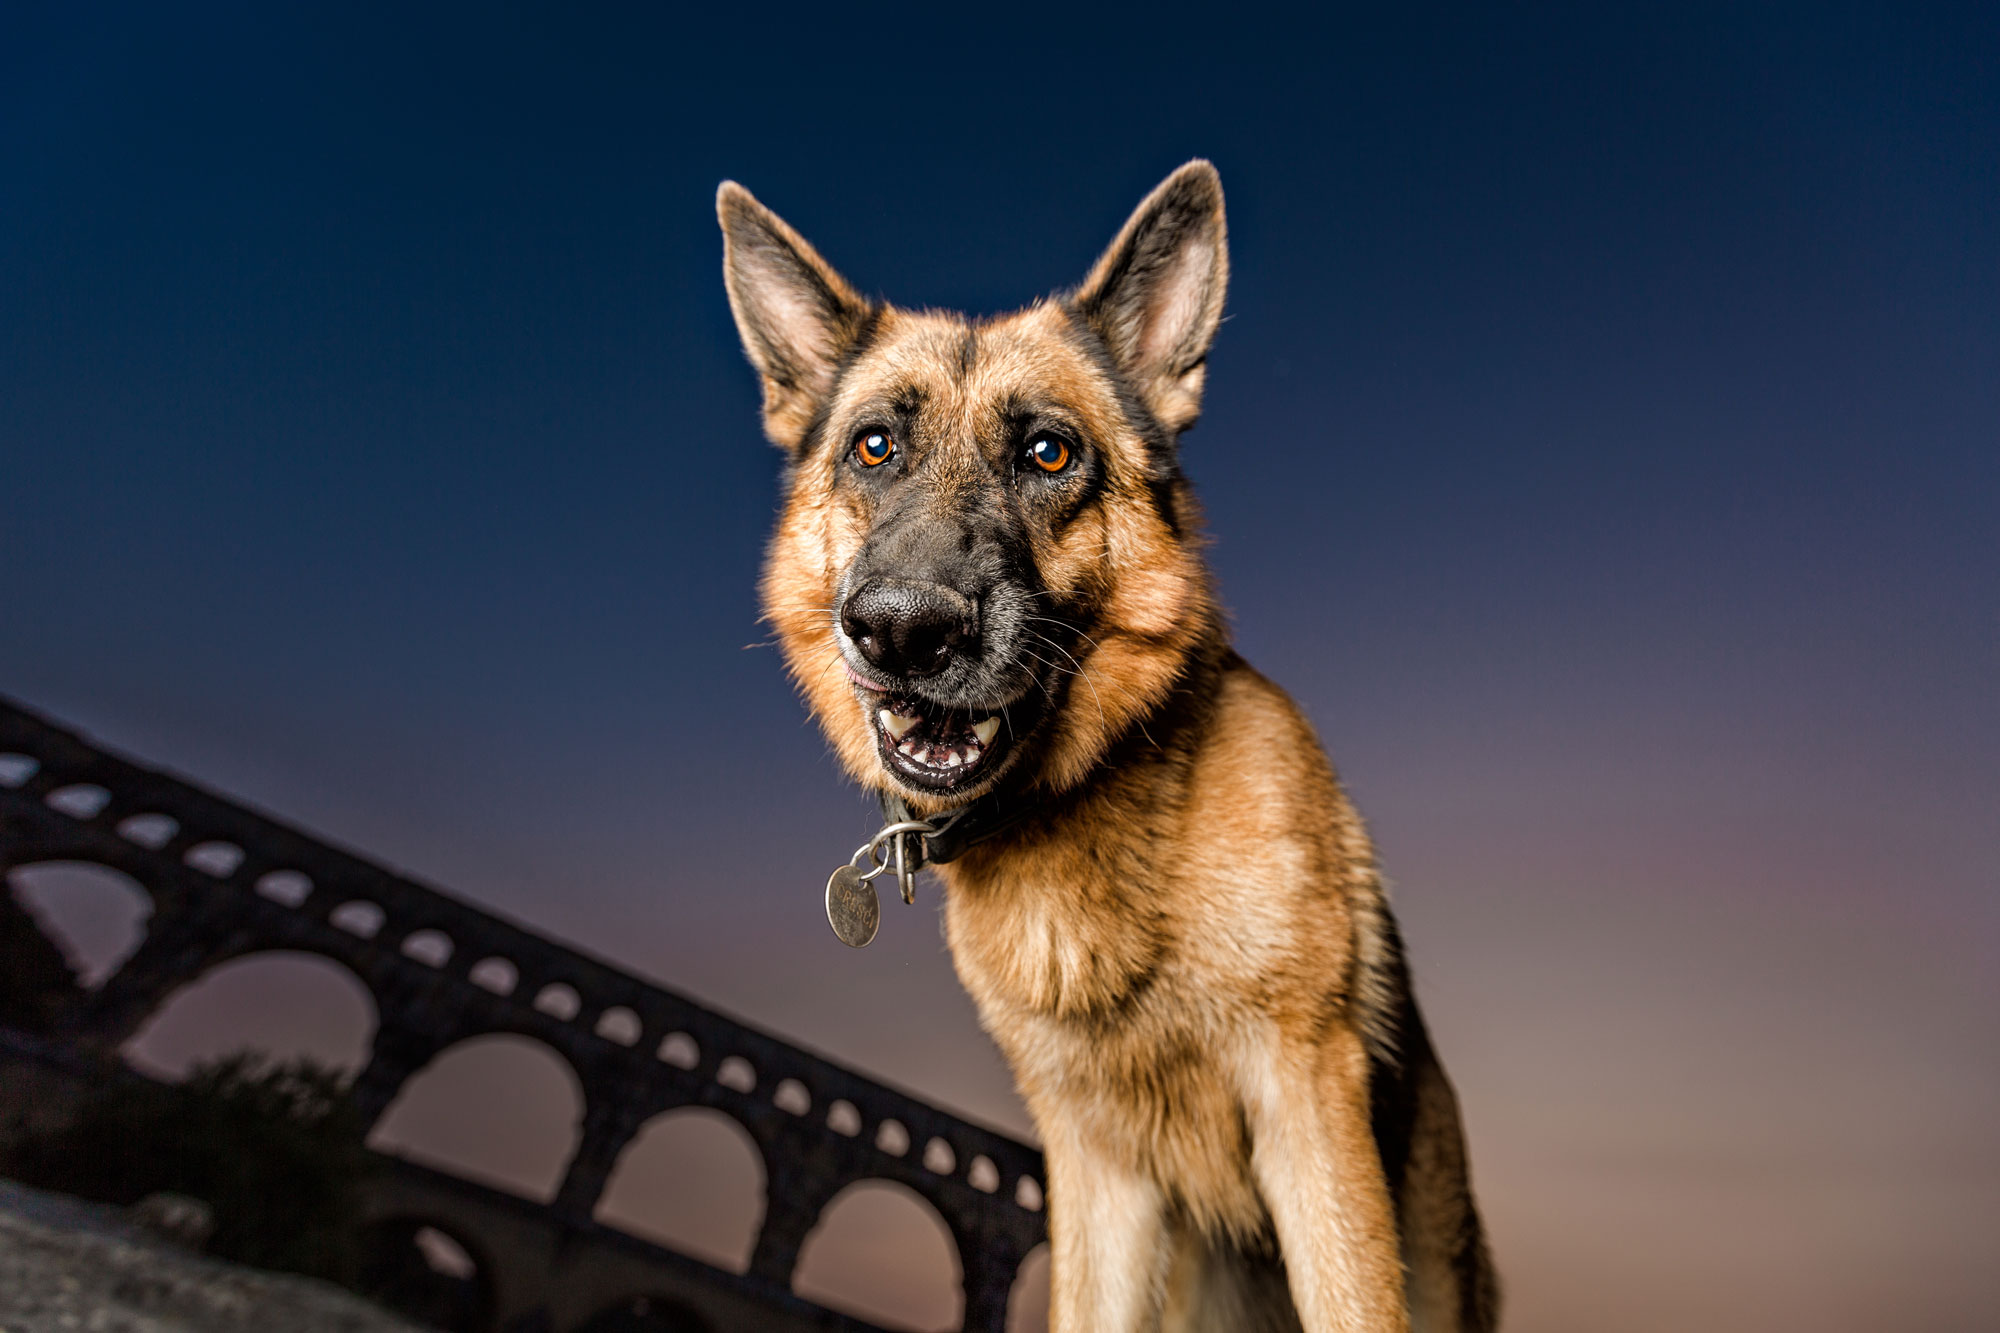 NJ Dog Photographer Leslie Leda